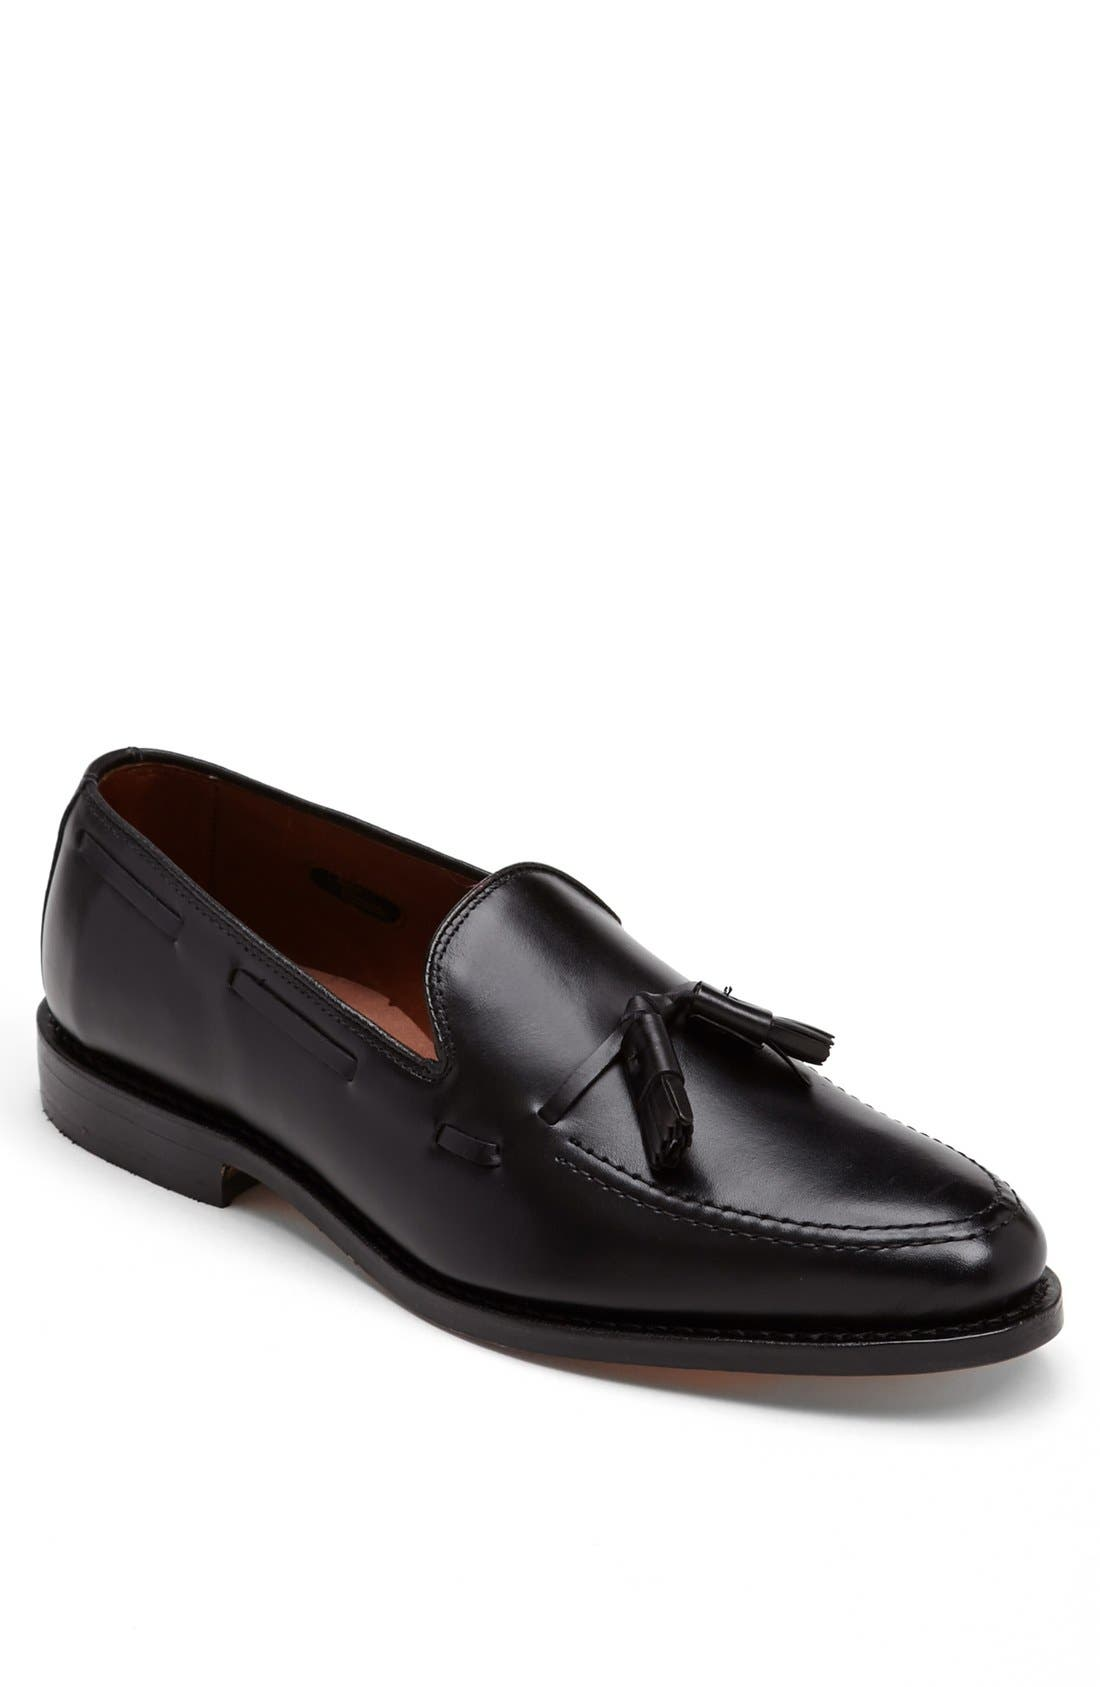 'Grayson' Tassel Loafer,                             Main thumbnail 1, color,                             Black Leather